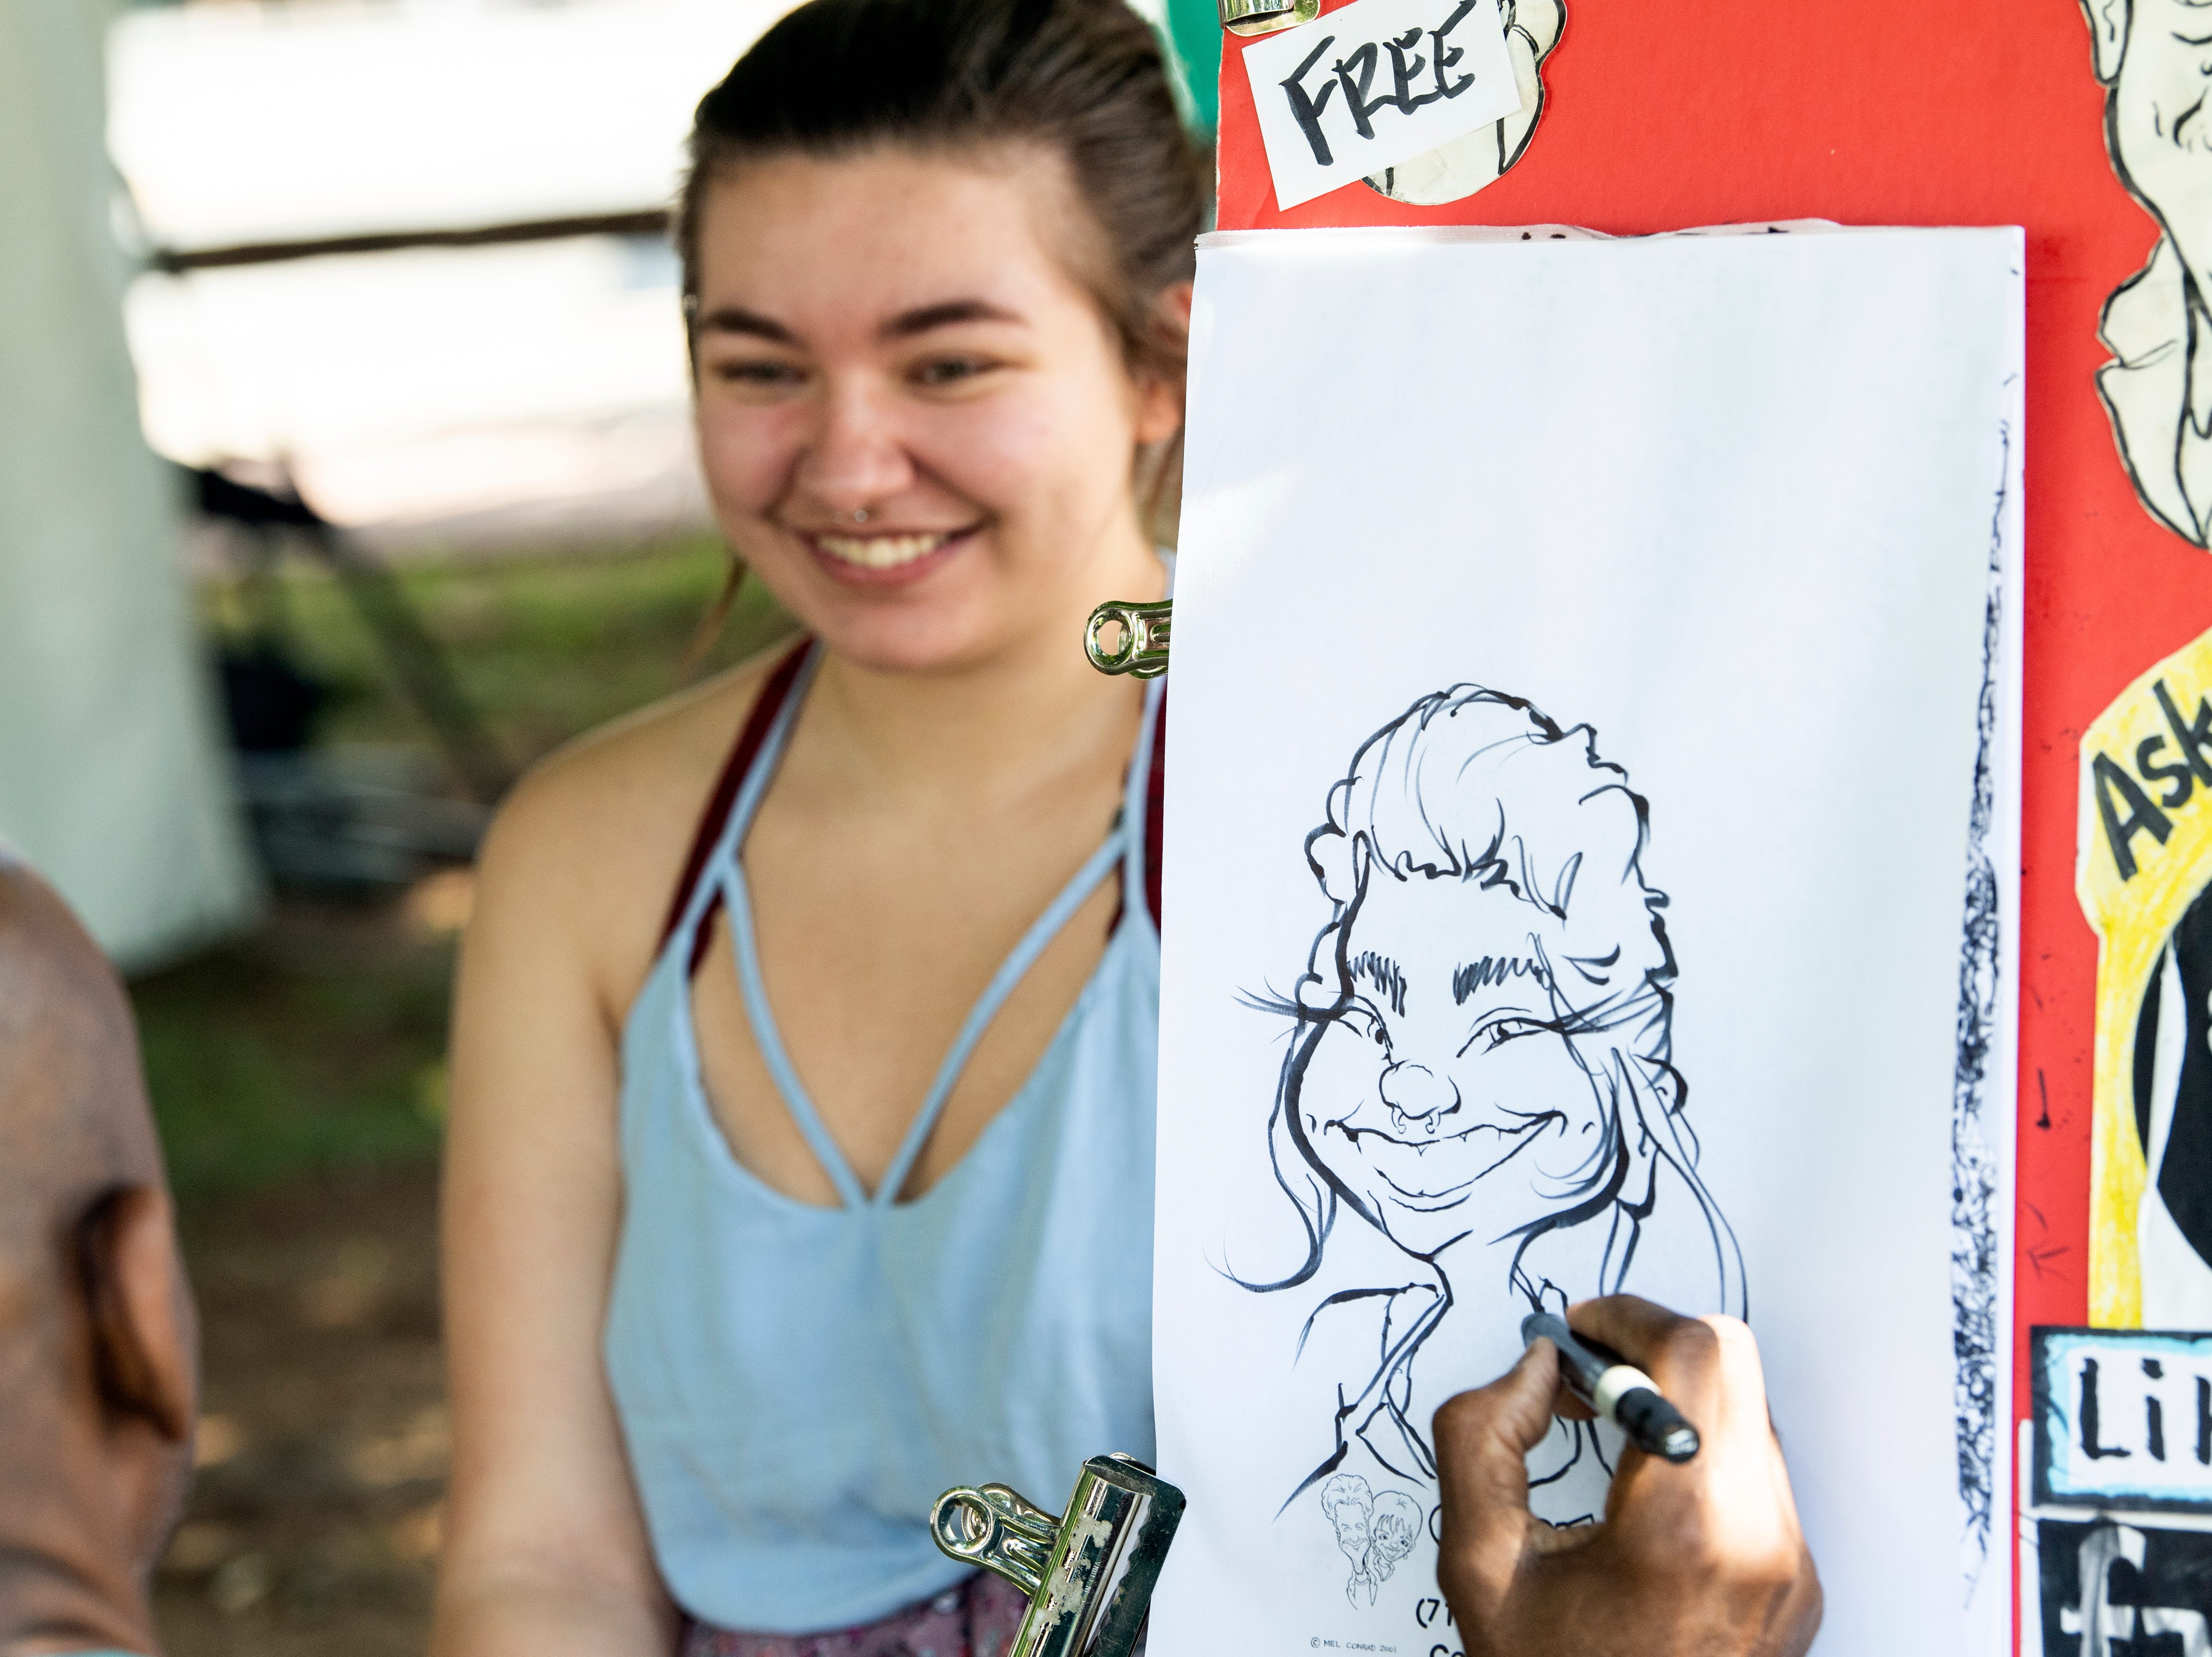 Daysha Brown sits for a free caricature by Mel Conrad at Yorkfest, Saturday, Aug. 25, 2018. The art festival continues through Sunday, hosting over 100 artists along the Codorus Creek.